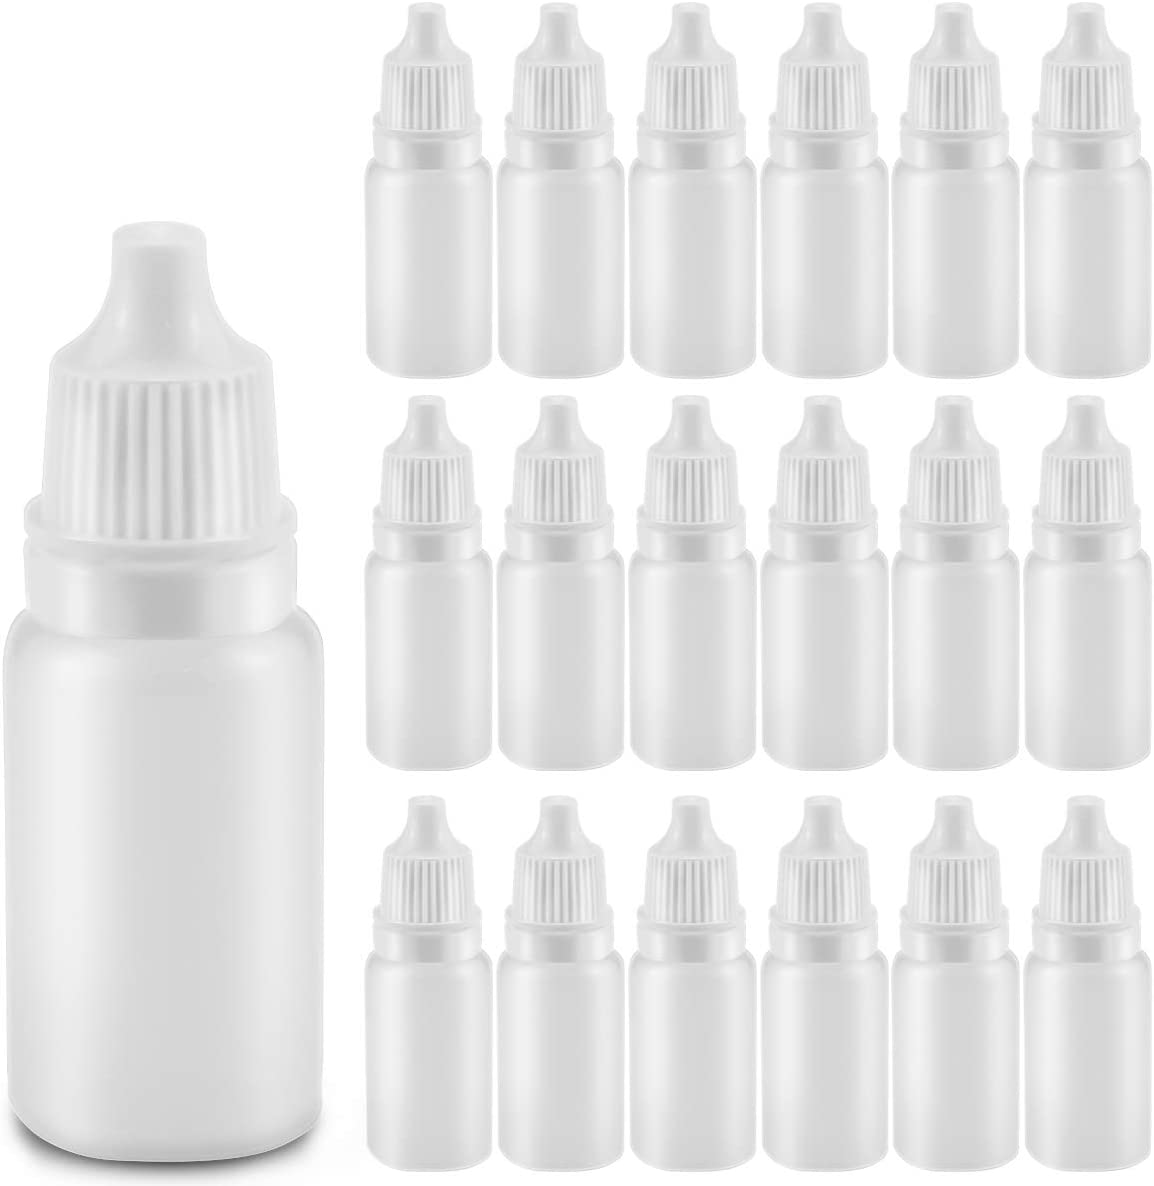 Twdrer 70PCS 15ml Plastic Empty Outlet SALE Year-end annual account Squeezable Liquid Dropper Bo Eye